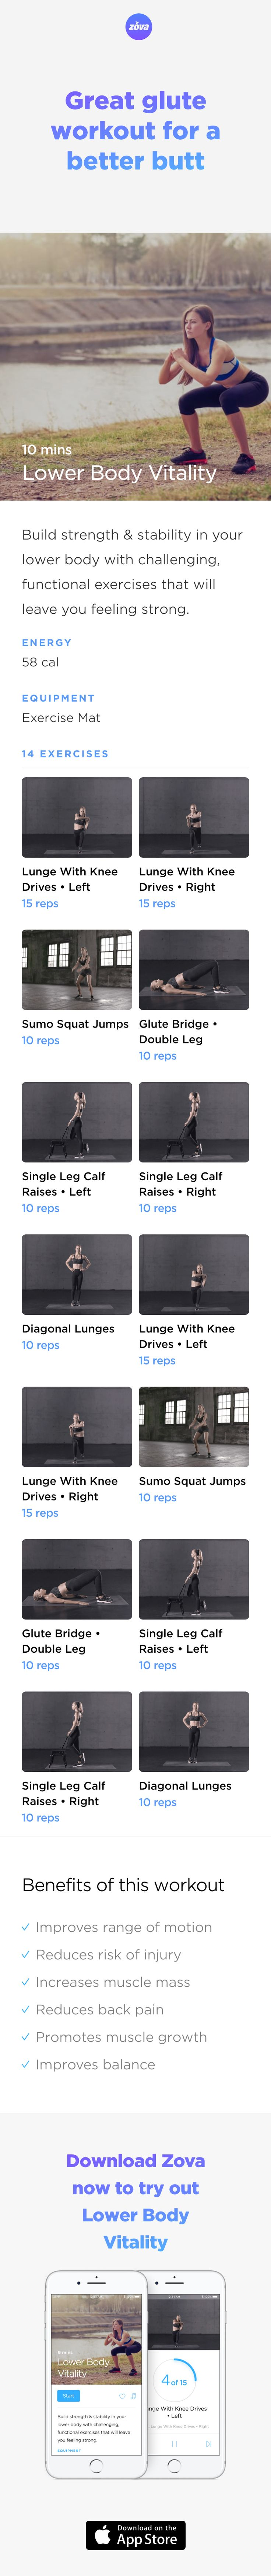 All hail the glute muscles! These guys help keep us stable, balanced and active, and they are the key to a better butt. This quick workout focuses on your glutes and hip flexors. Not only will it tighten and grow your glutes, it'll also make everyday mobility easier. #HIIT #booty #butt #workout #fitness #squat #bodyweight